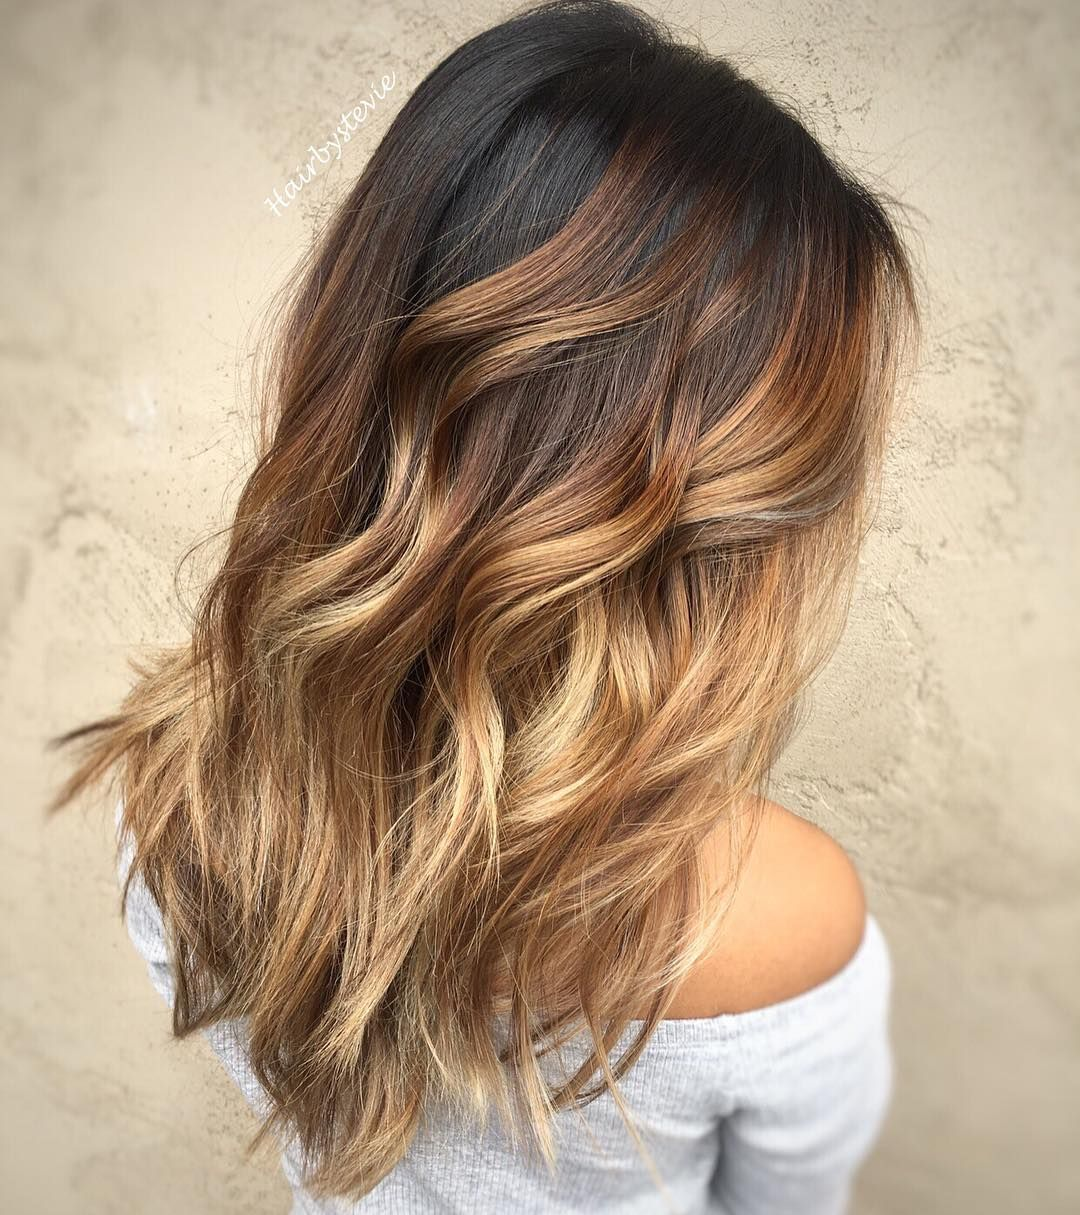 20 sweet caramel balayage hairstyles for brunettes and beyond caramel balayage balayage and blond. Black Bedroom Furniture Sets. Home Design Ideas